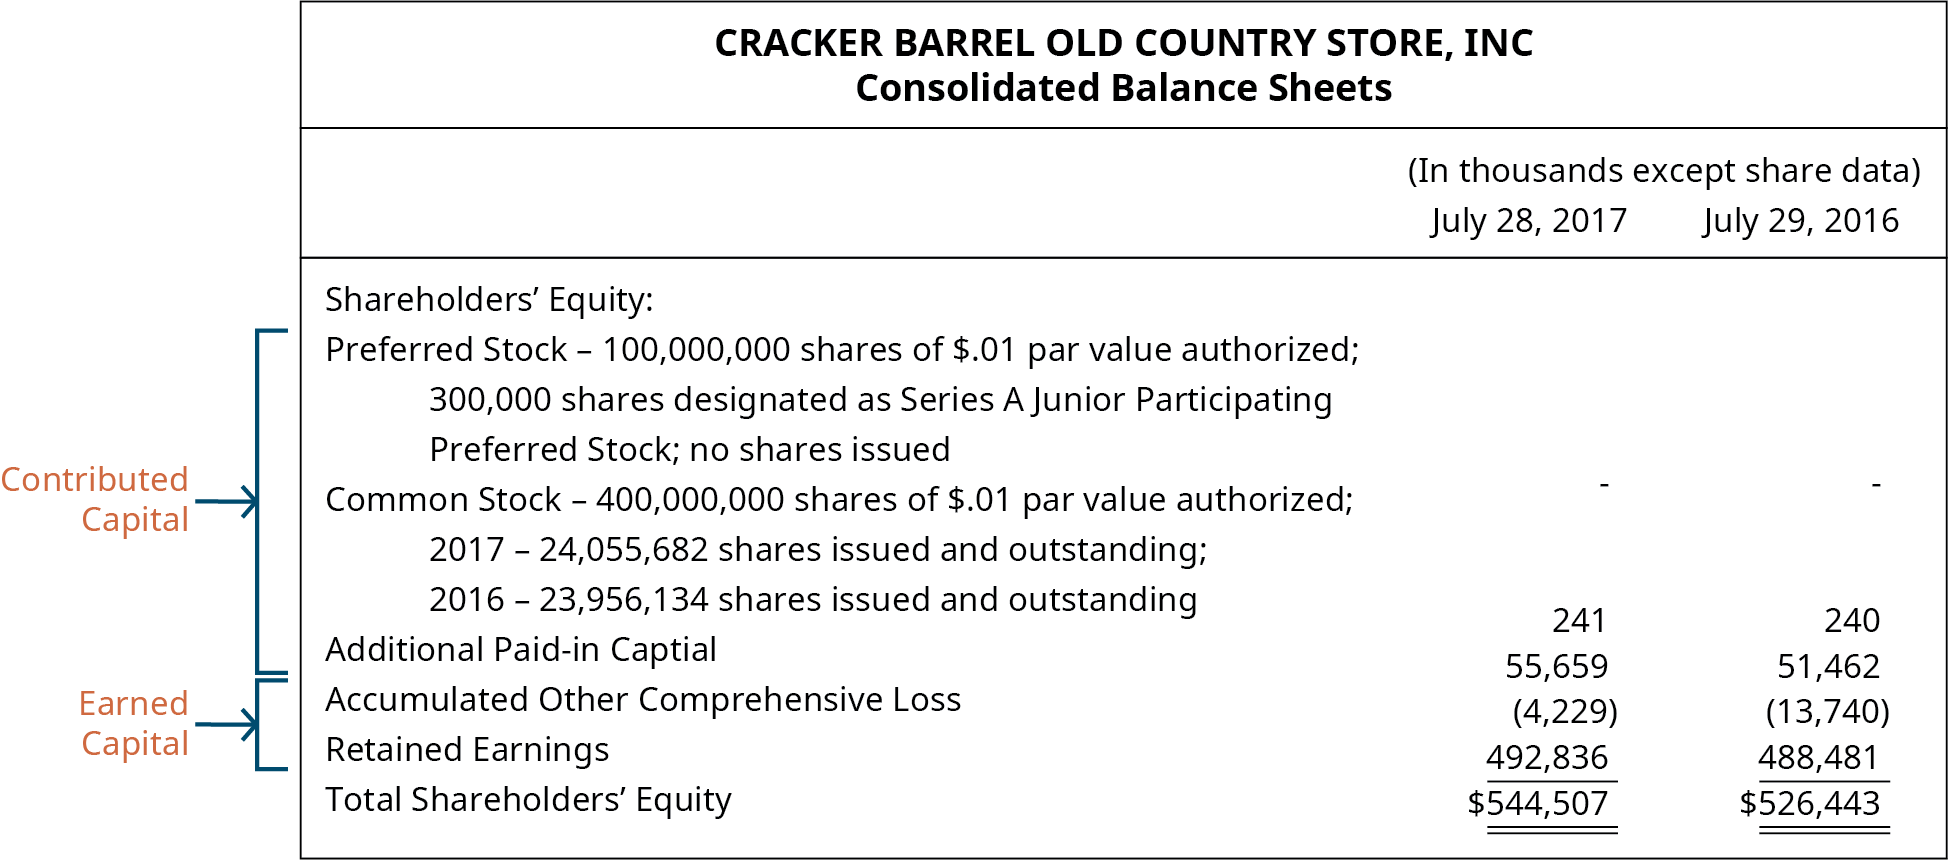 Cracker Barrel Old Country Store, Inc, Consolidated Balance Sheets.